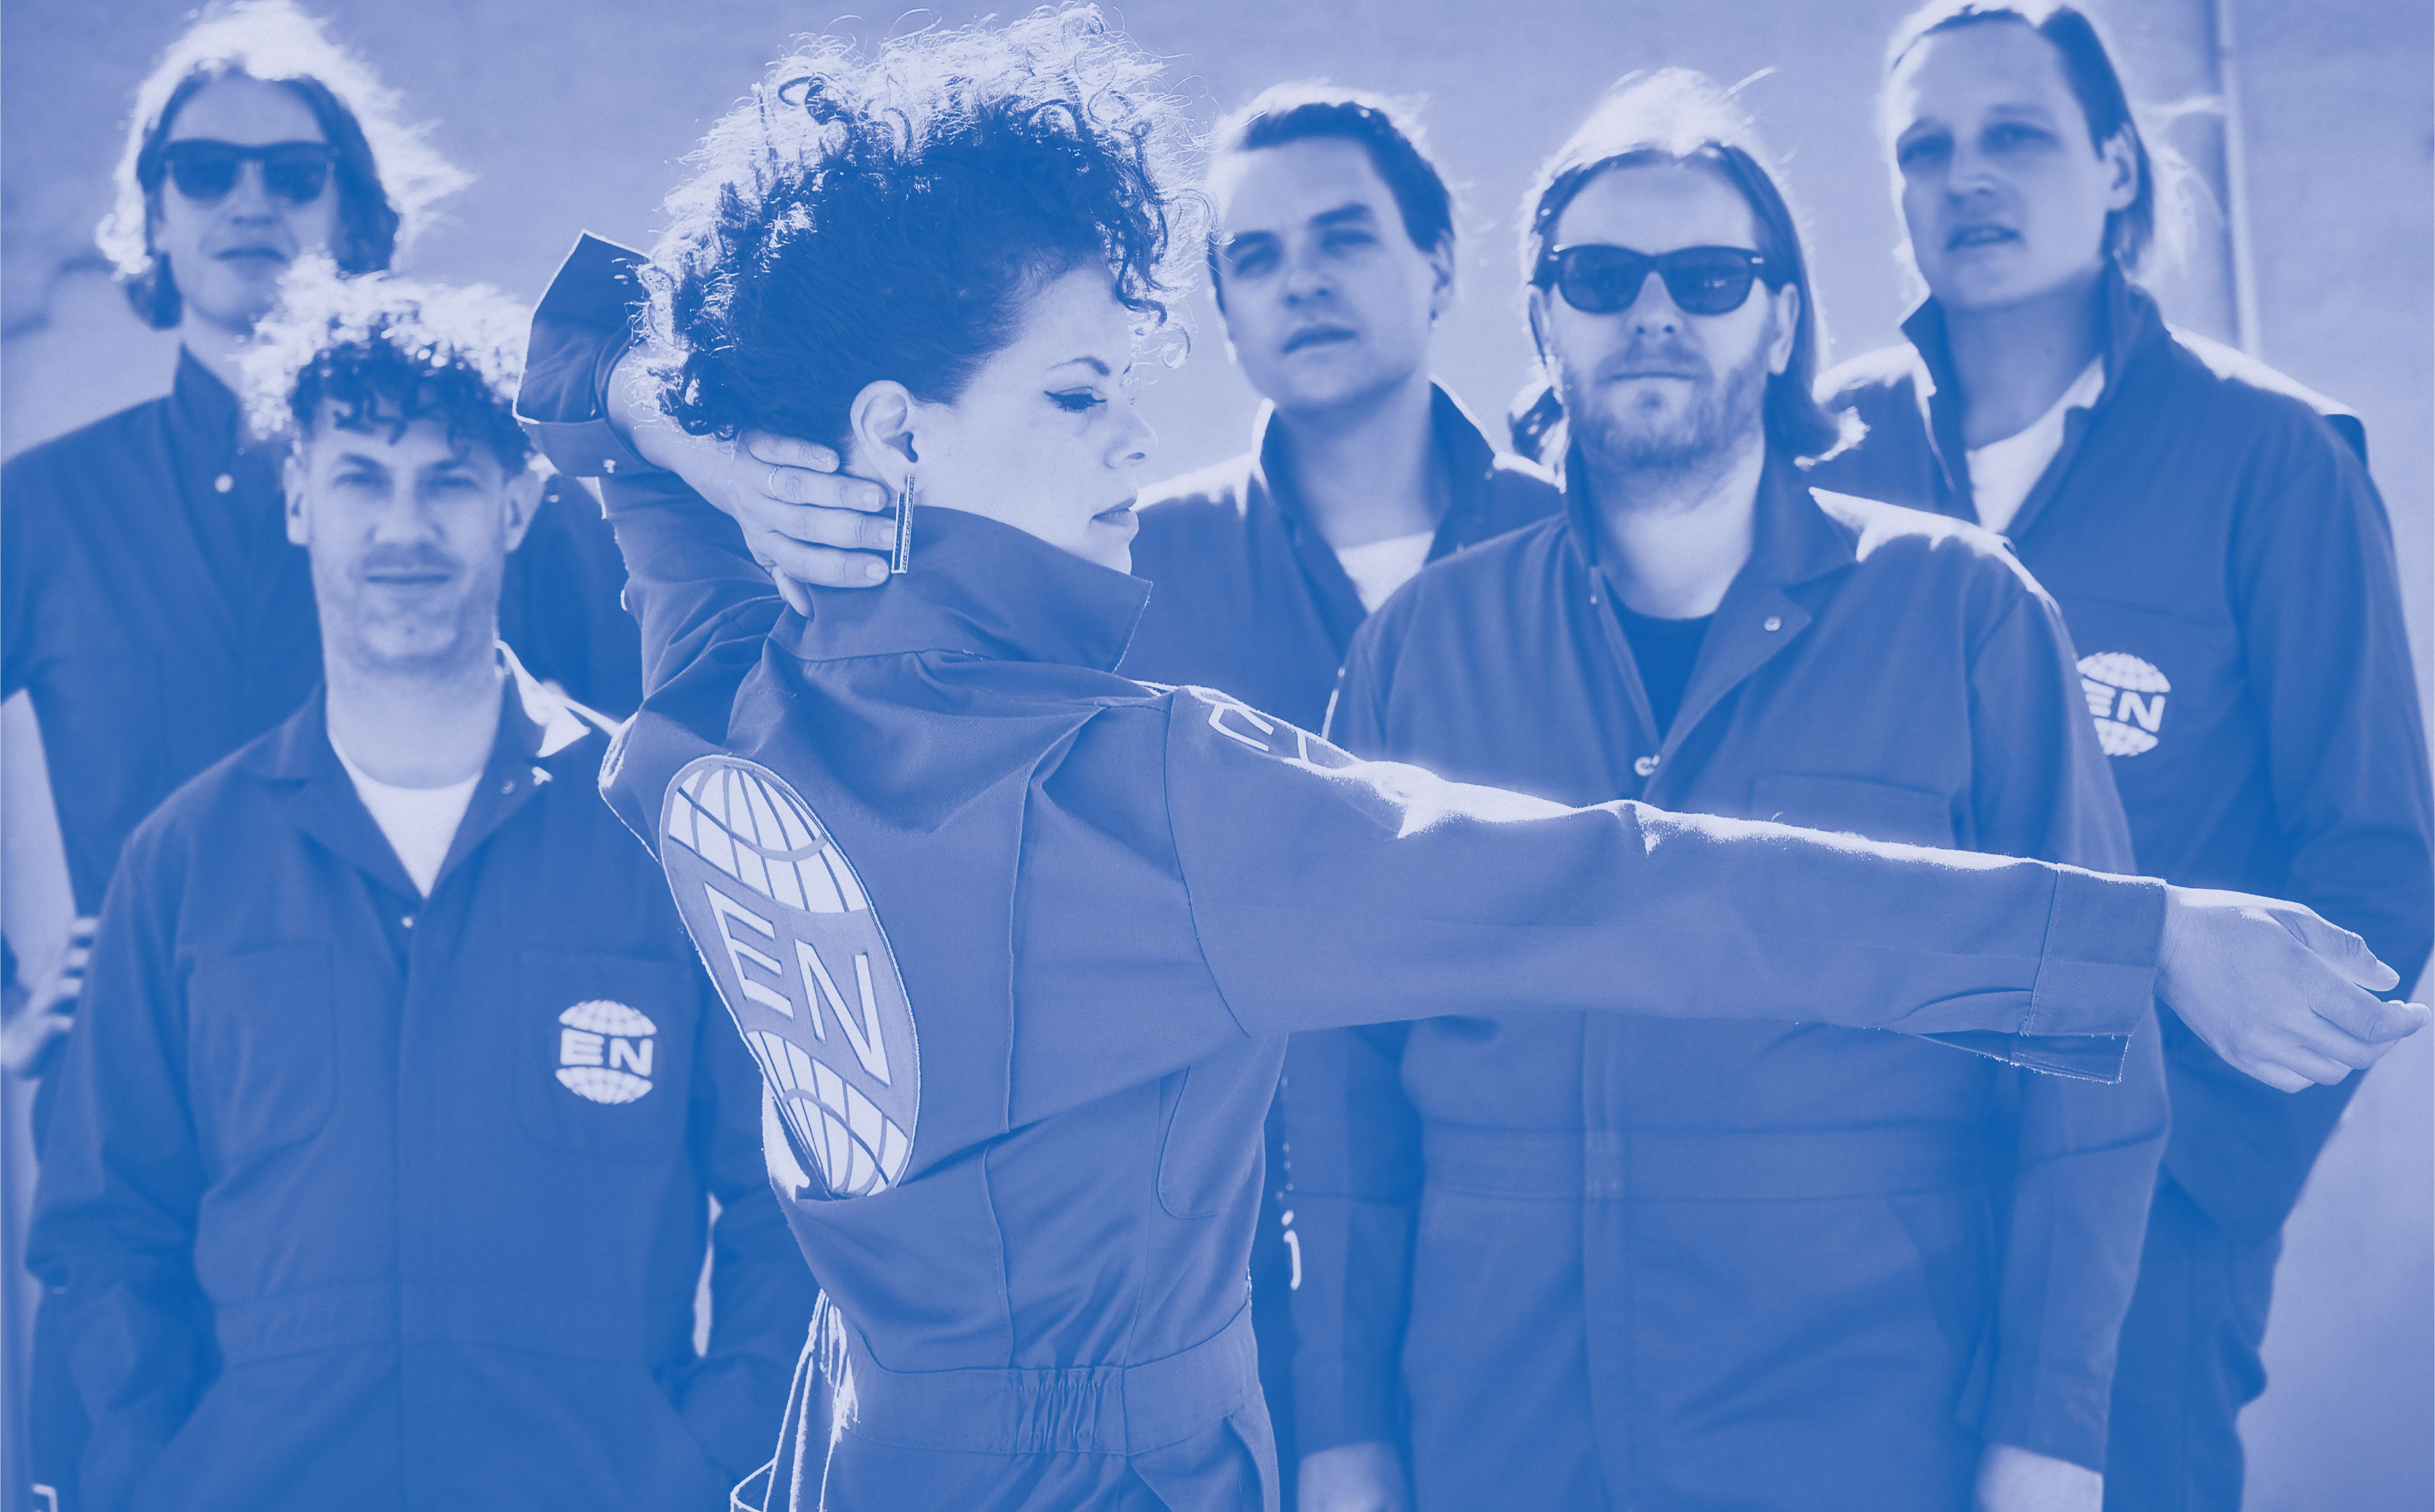 arcade-fire-everything-now-press-1